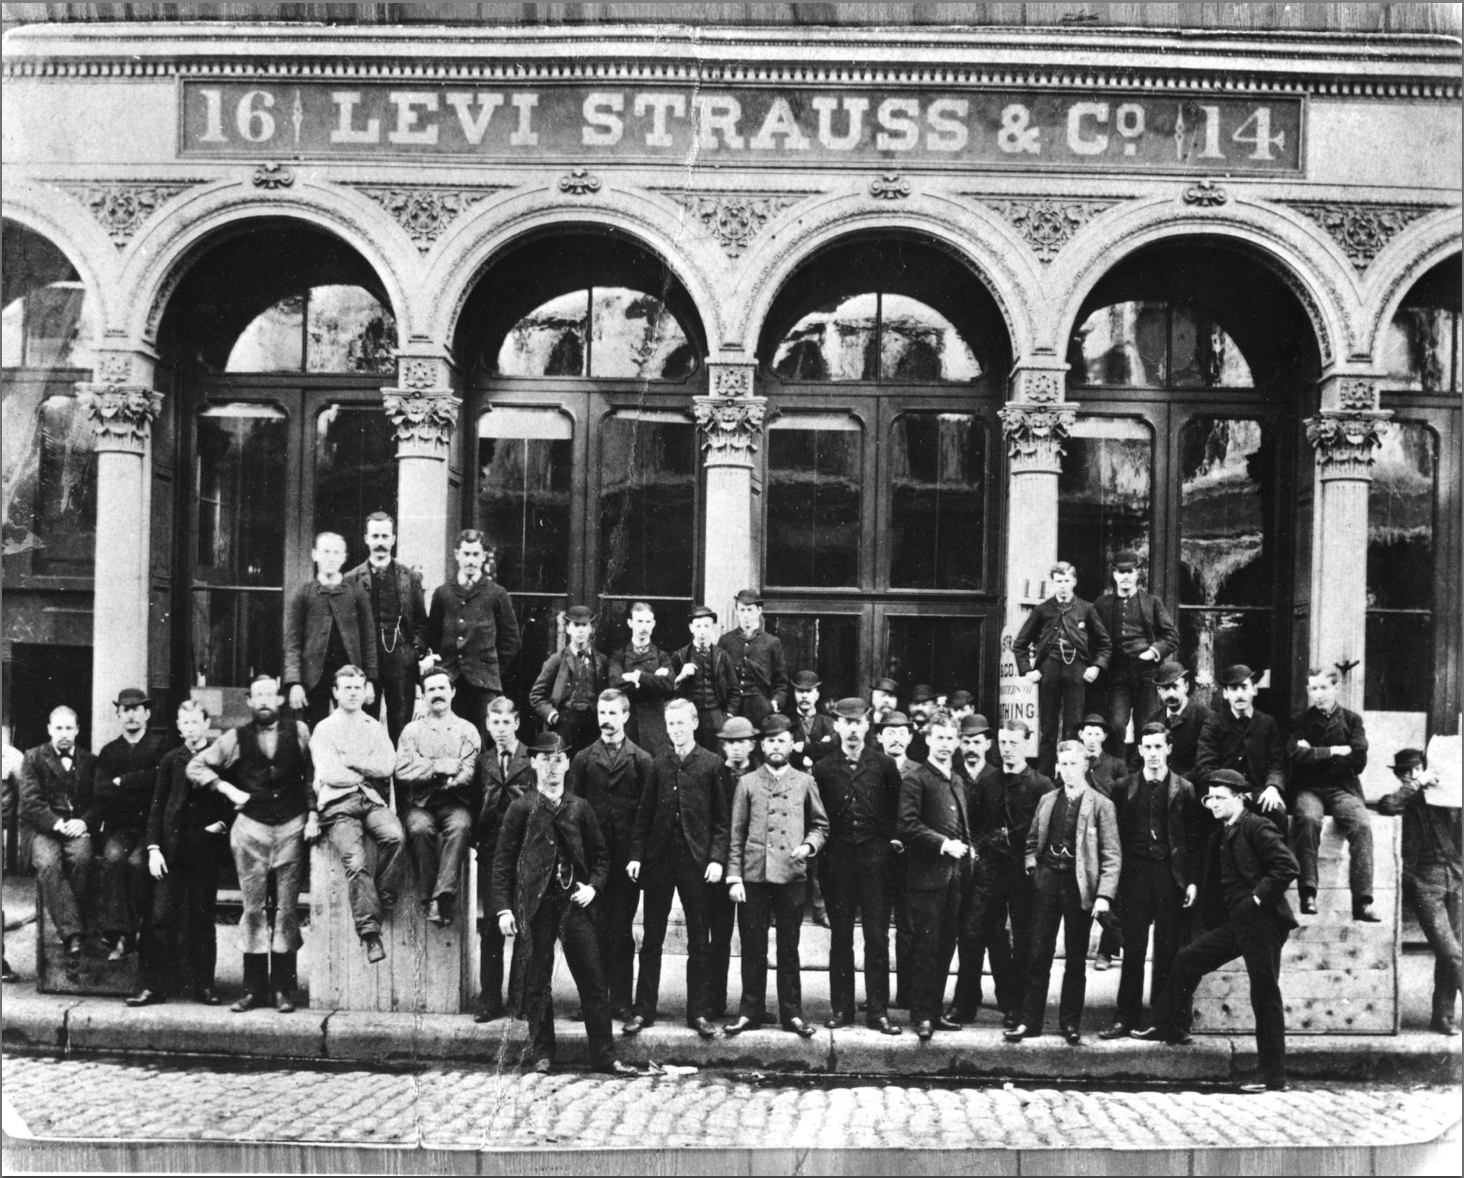 levi and strauss co Shop for levi and strauss co on etsy, the place to express your creativity through the buying and selling of handmade and vintage goods.